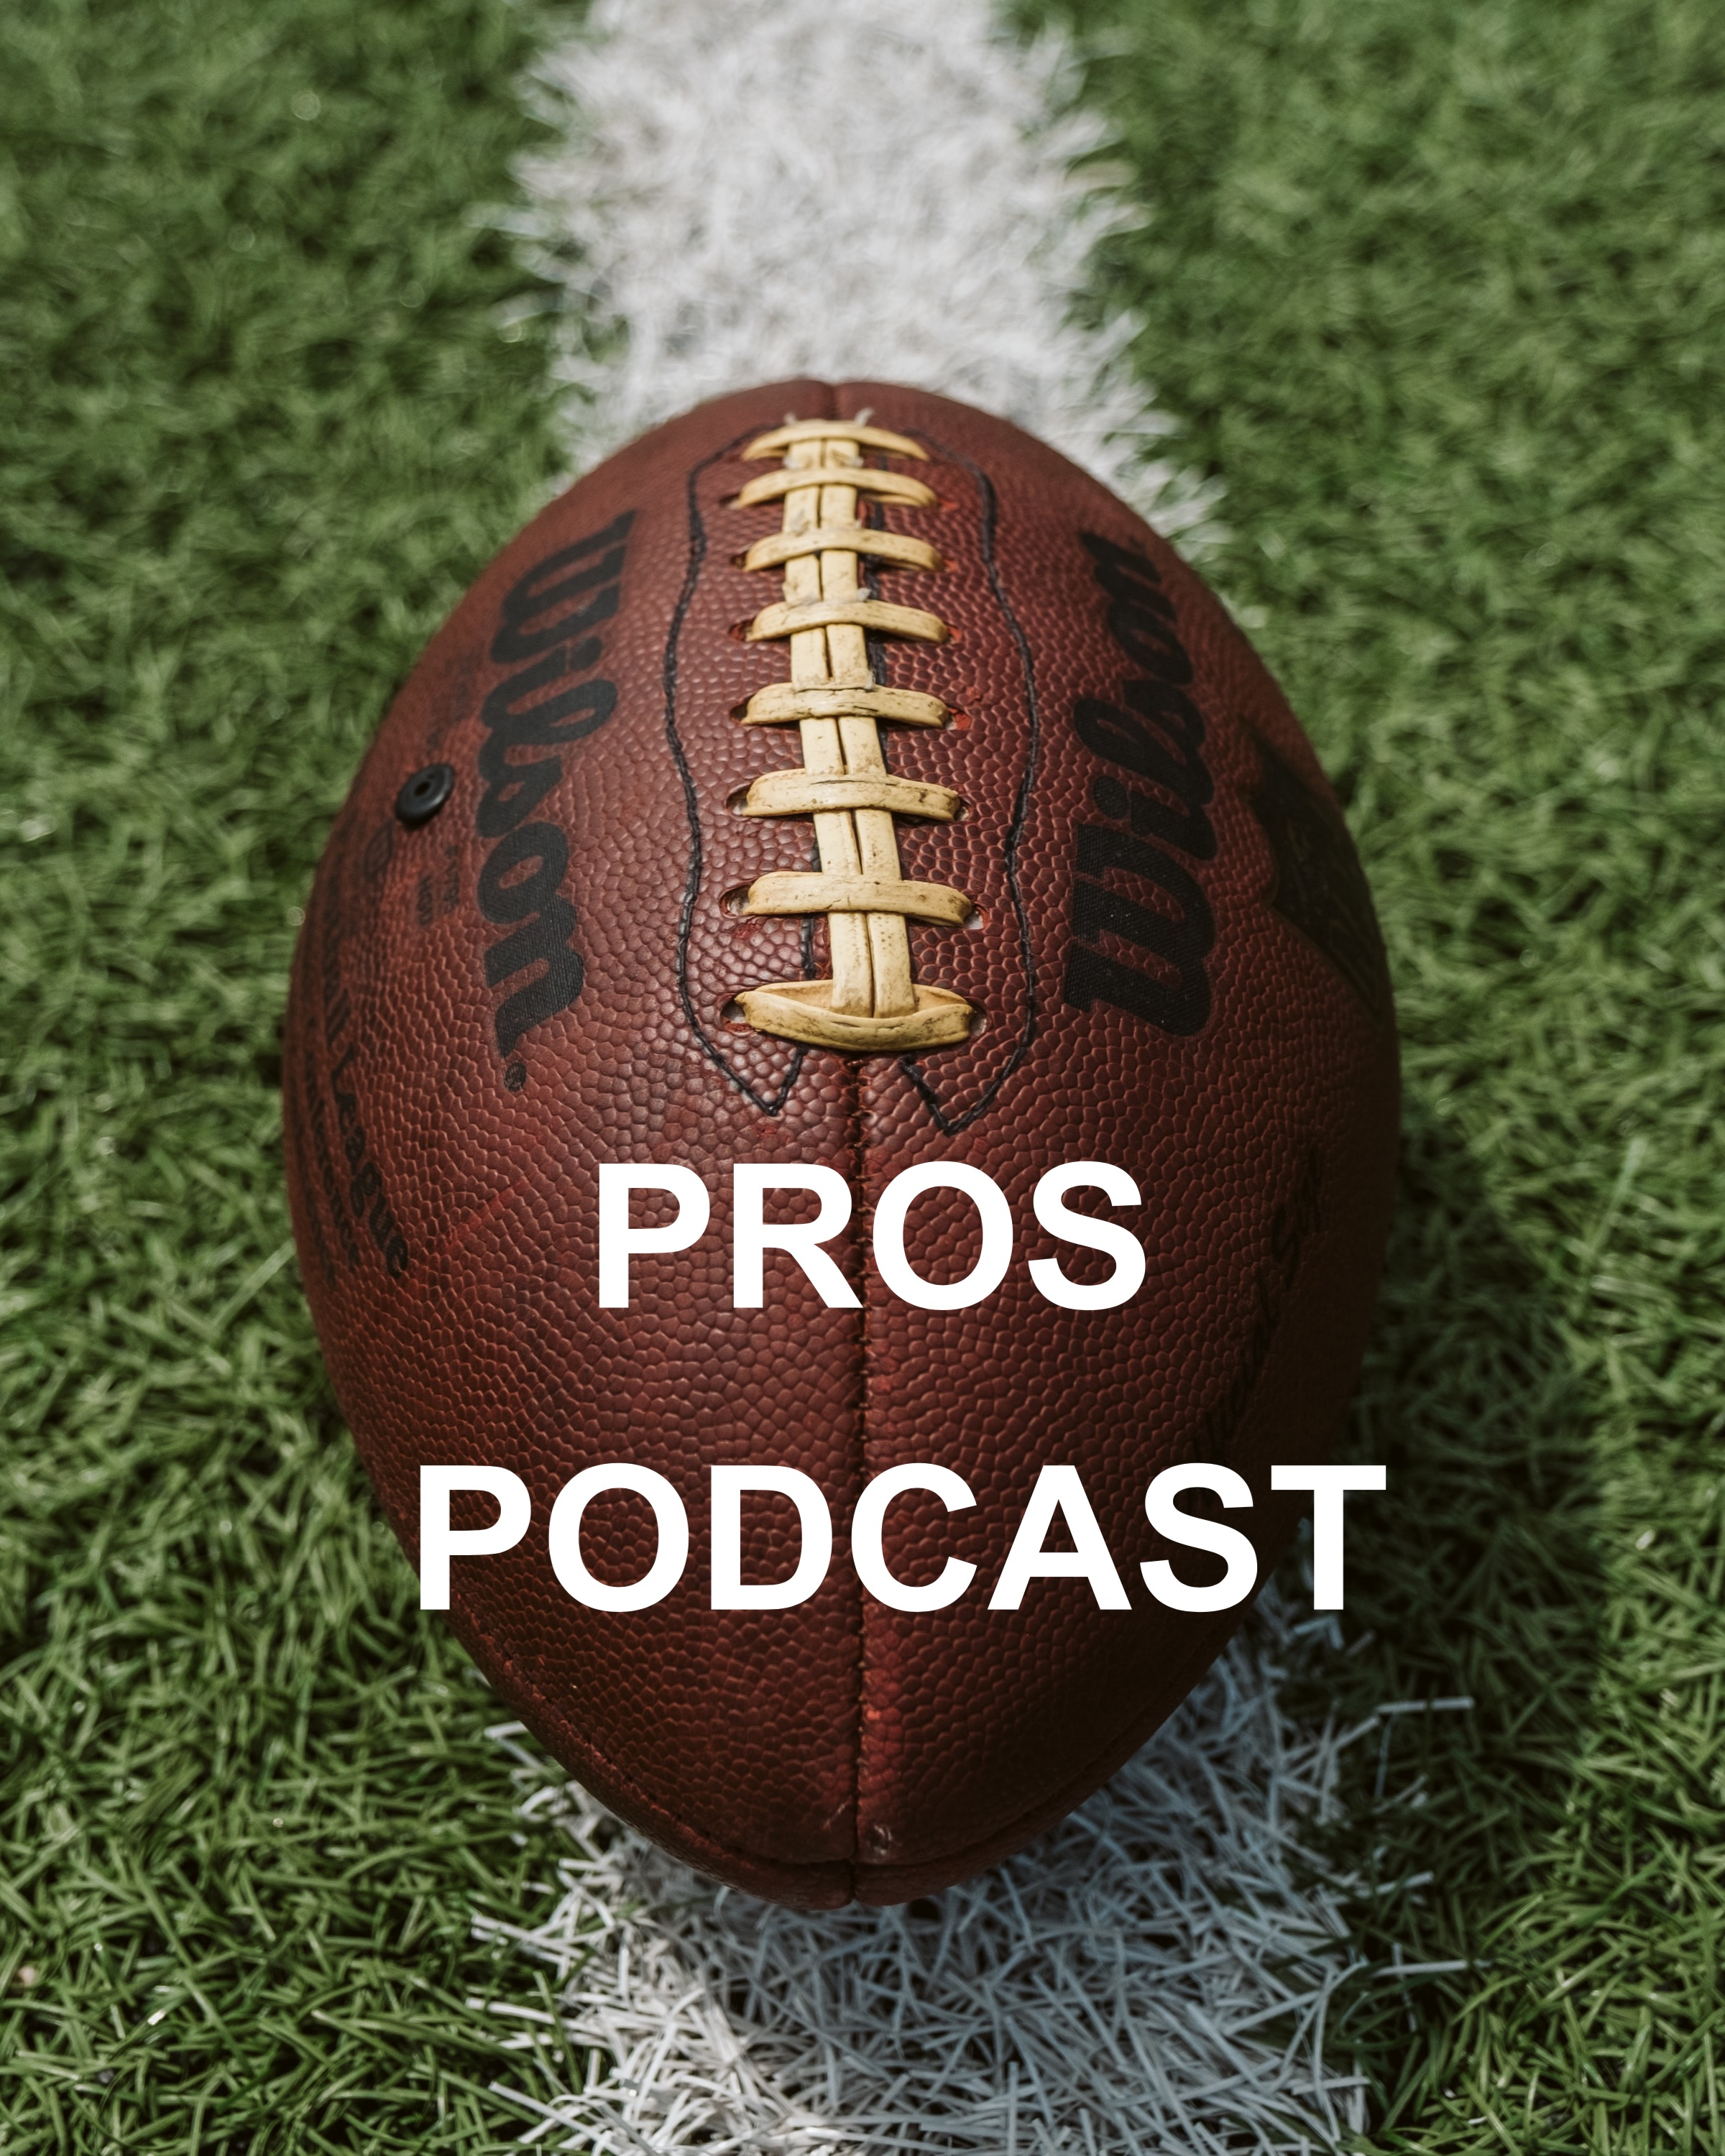 PROS PODCAST